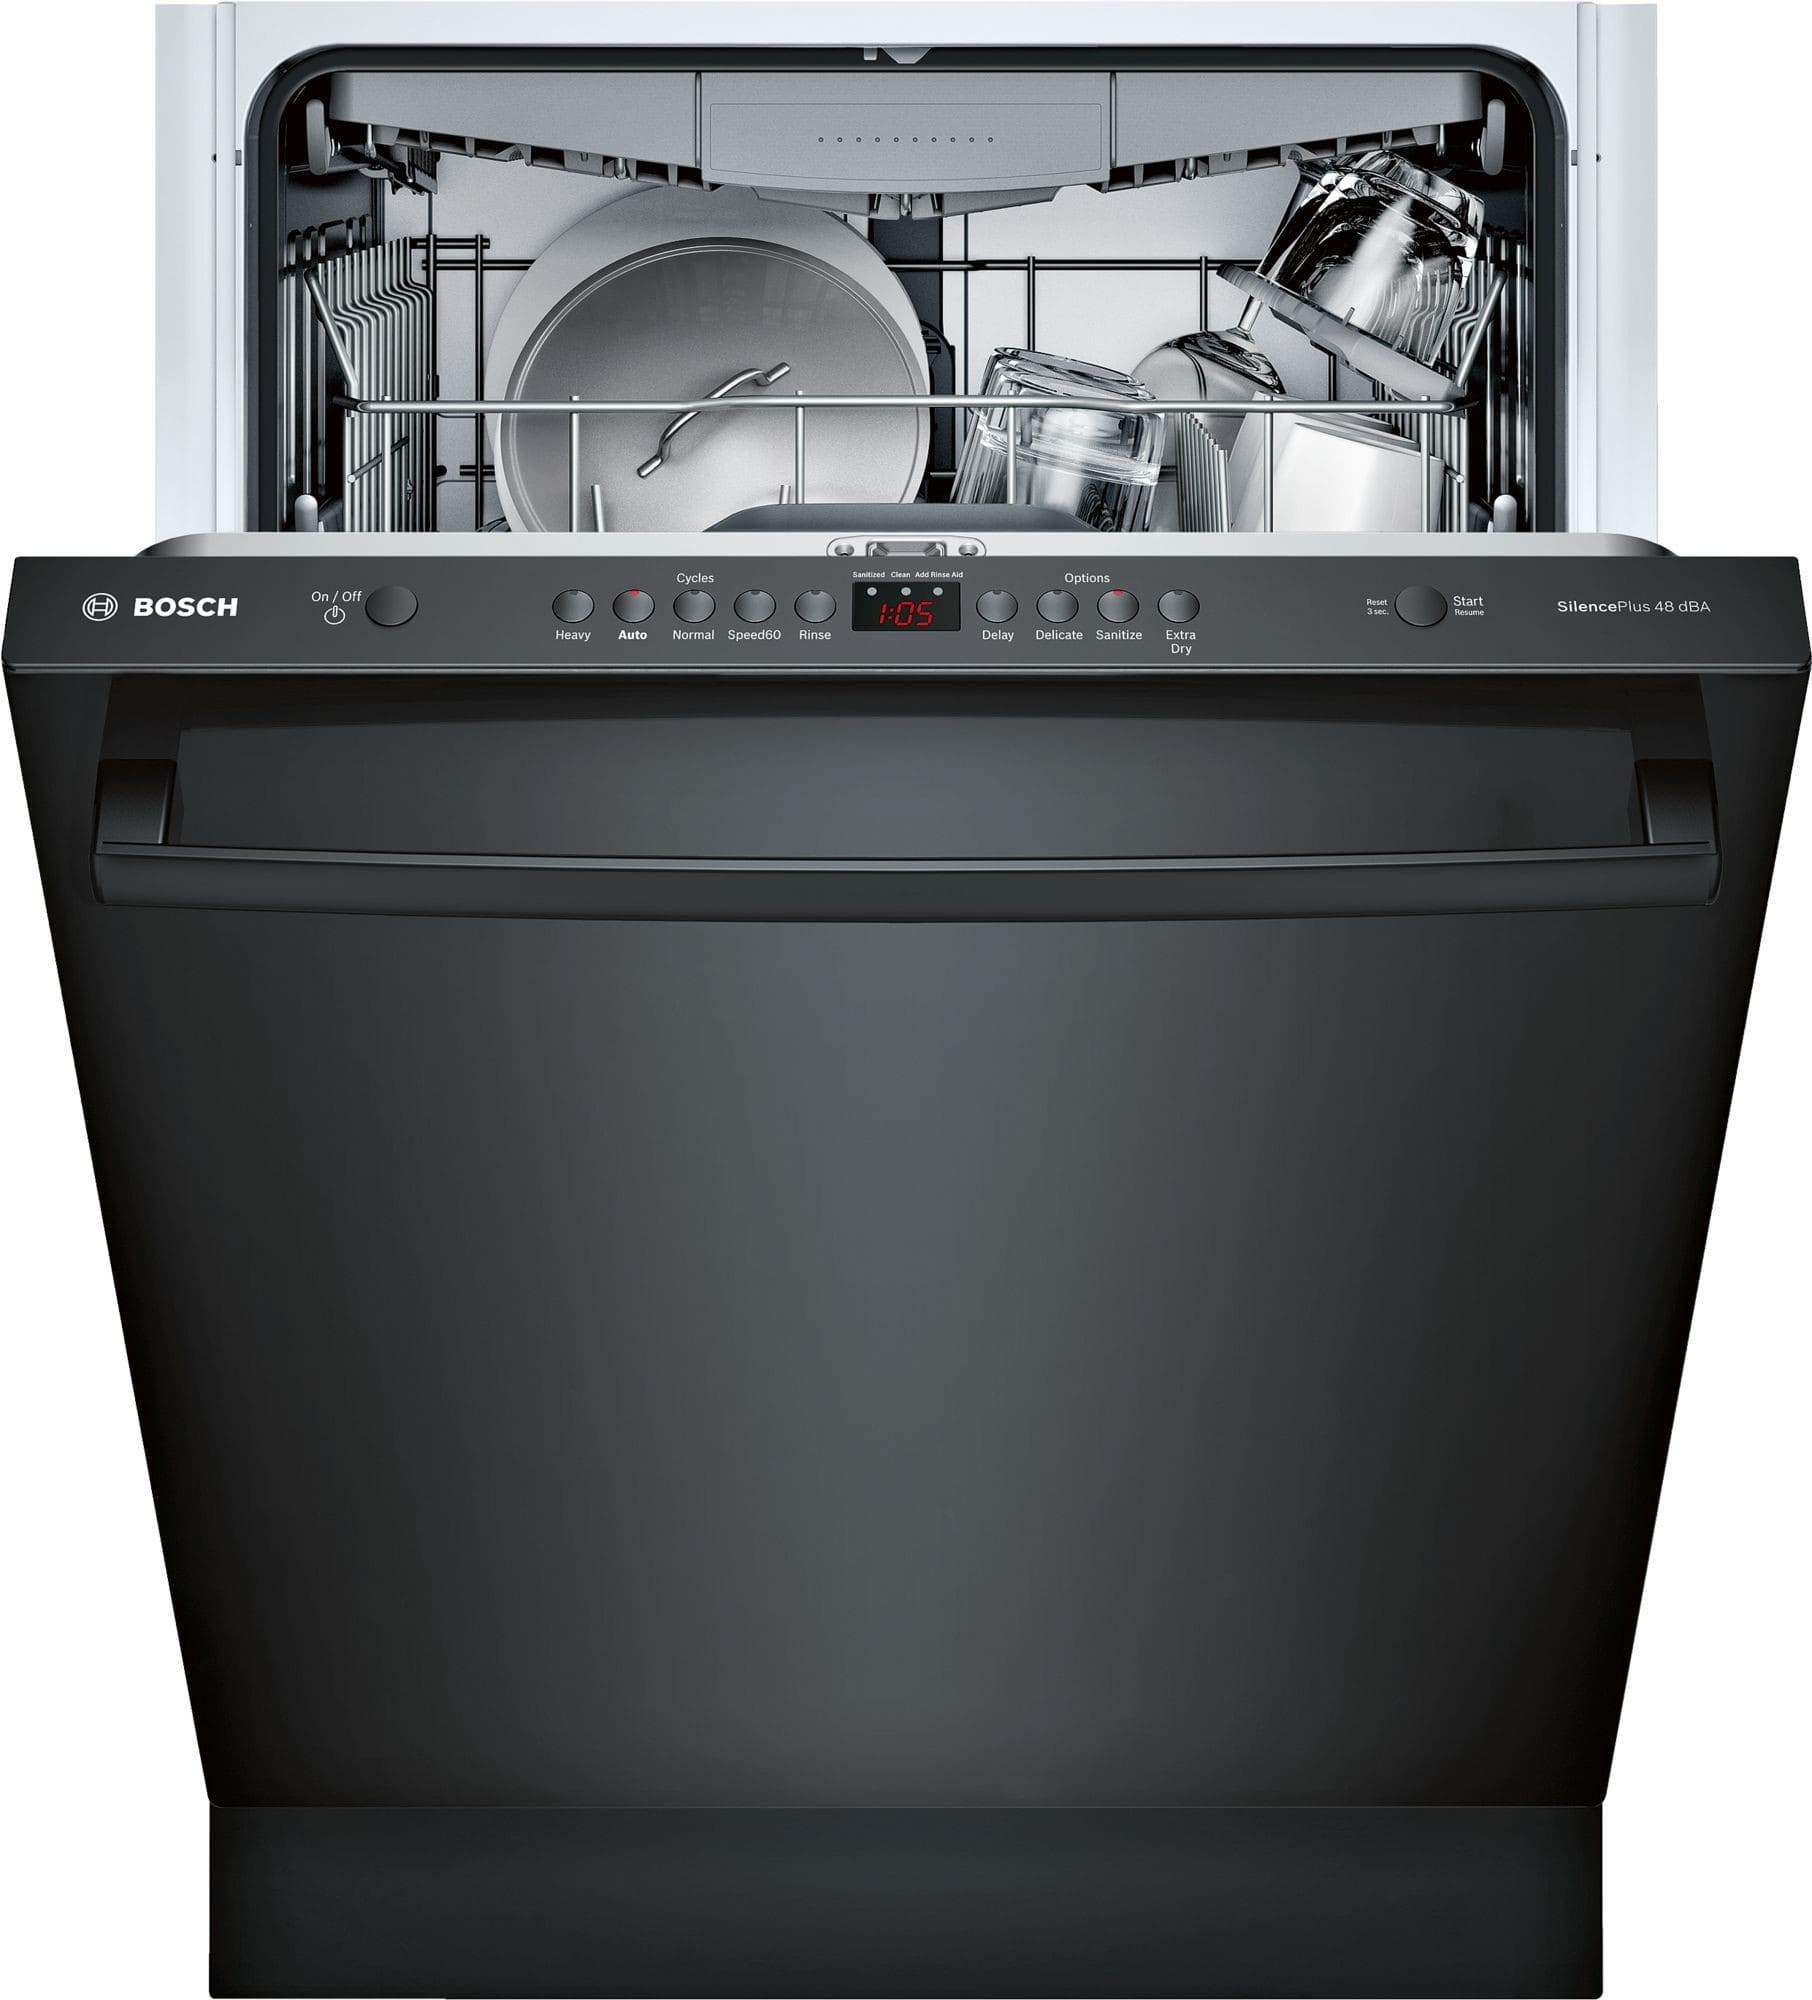 Bosch Shxm4ay56n Fully Integrated Dishwasher With 15 Place